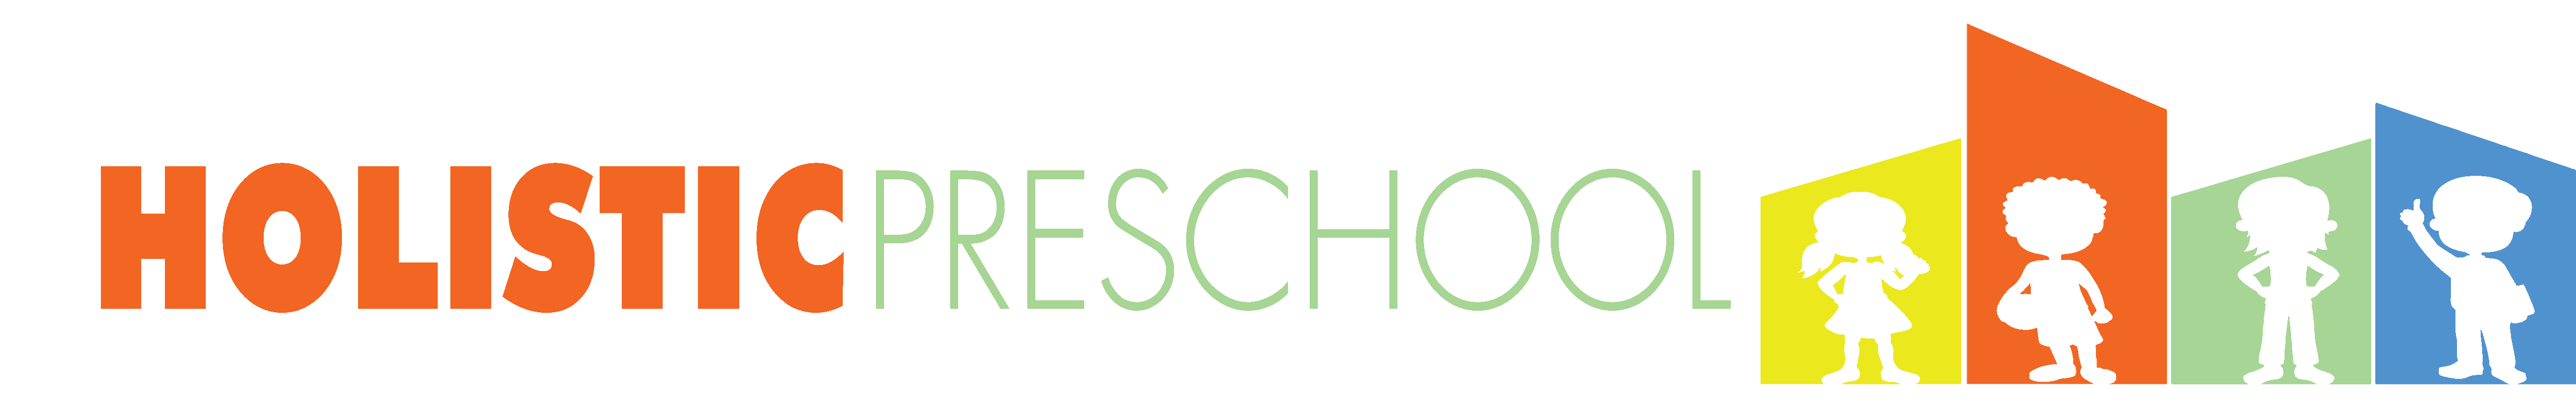 Camelback Holistic Preschool in Phoenix, AZ | Early Childhood Education